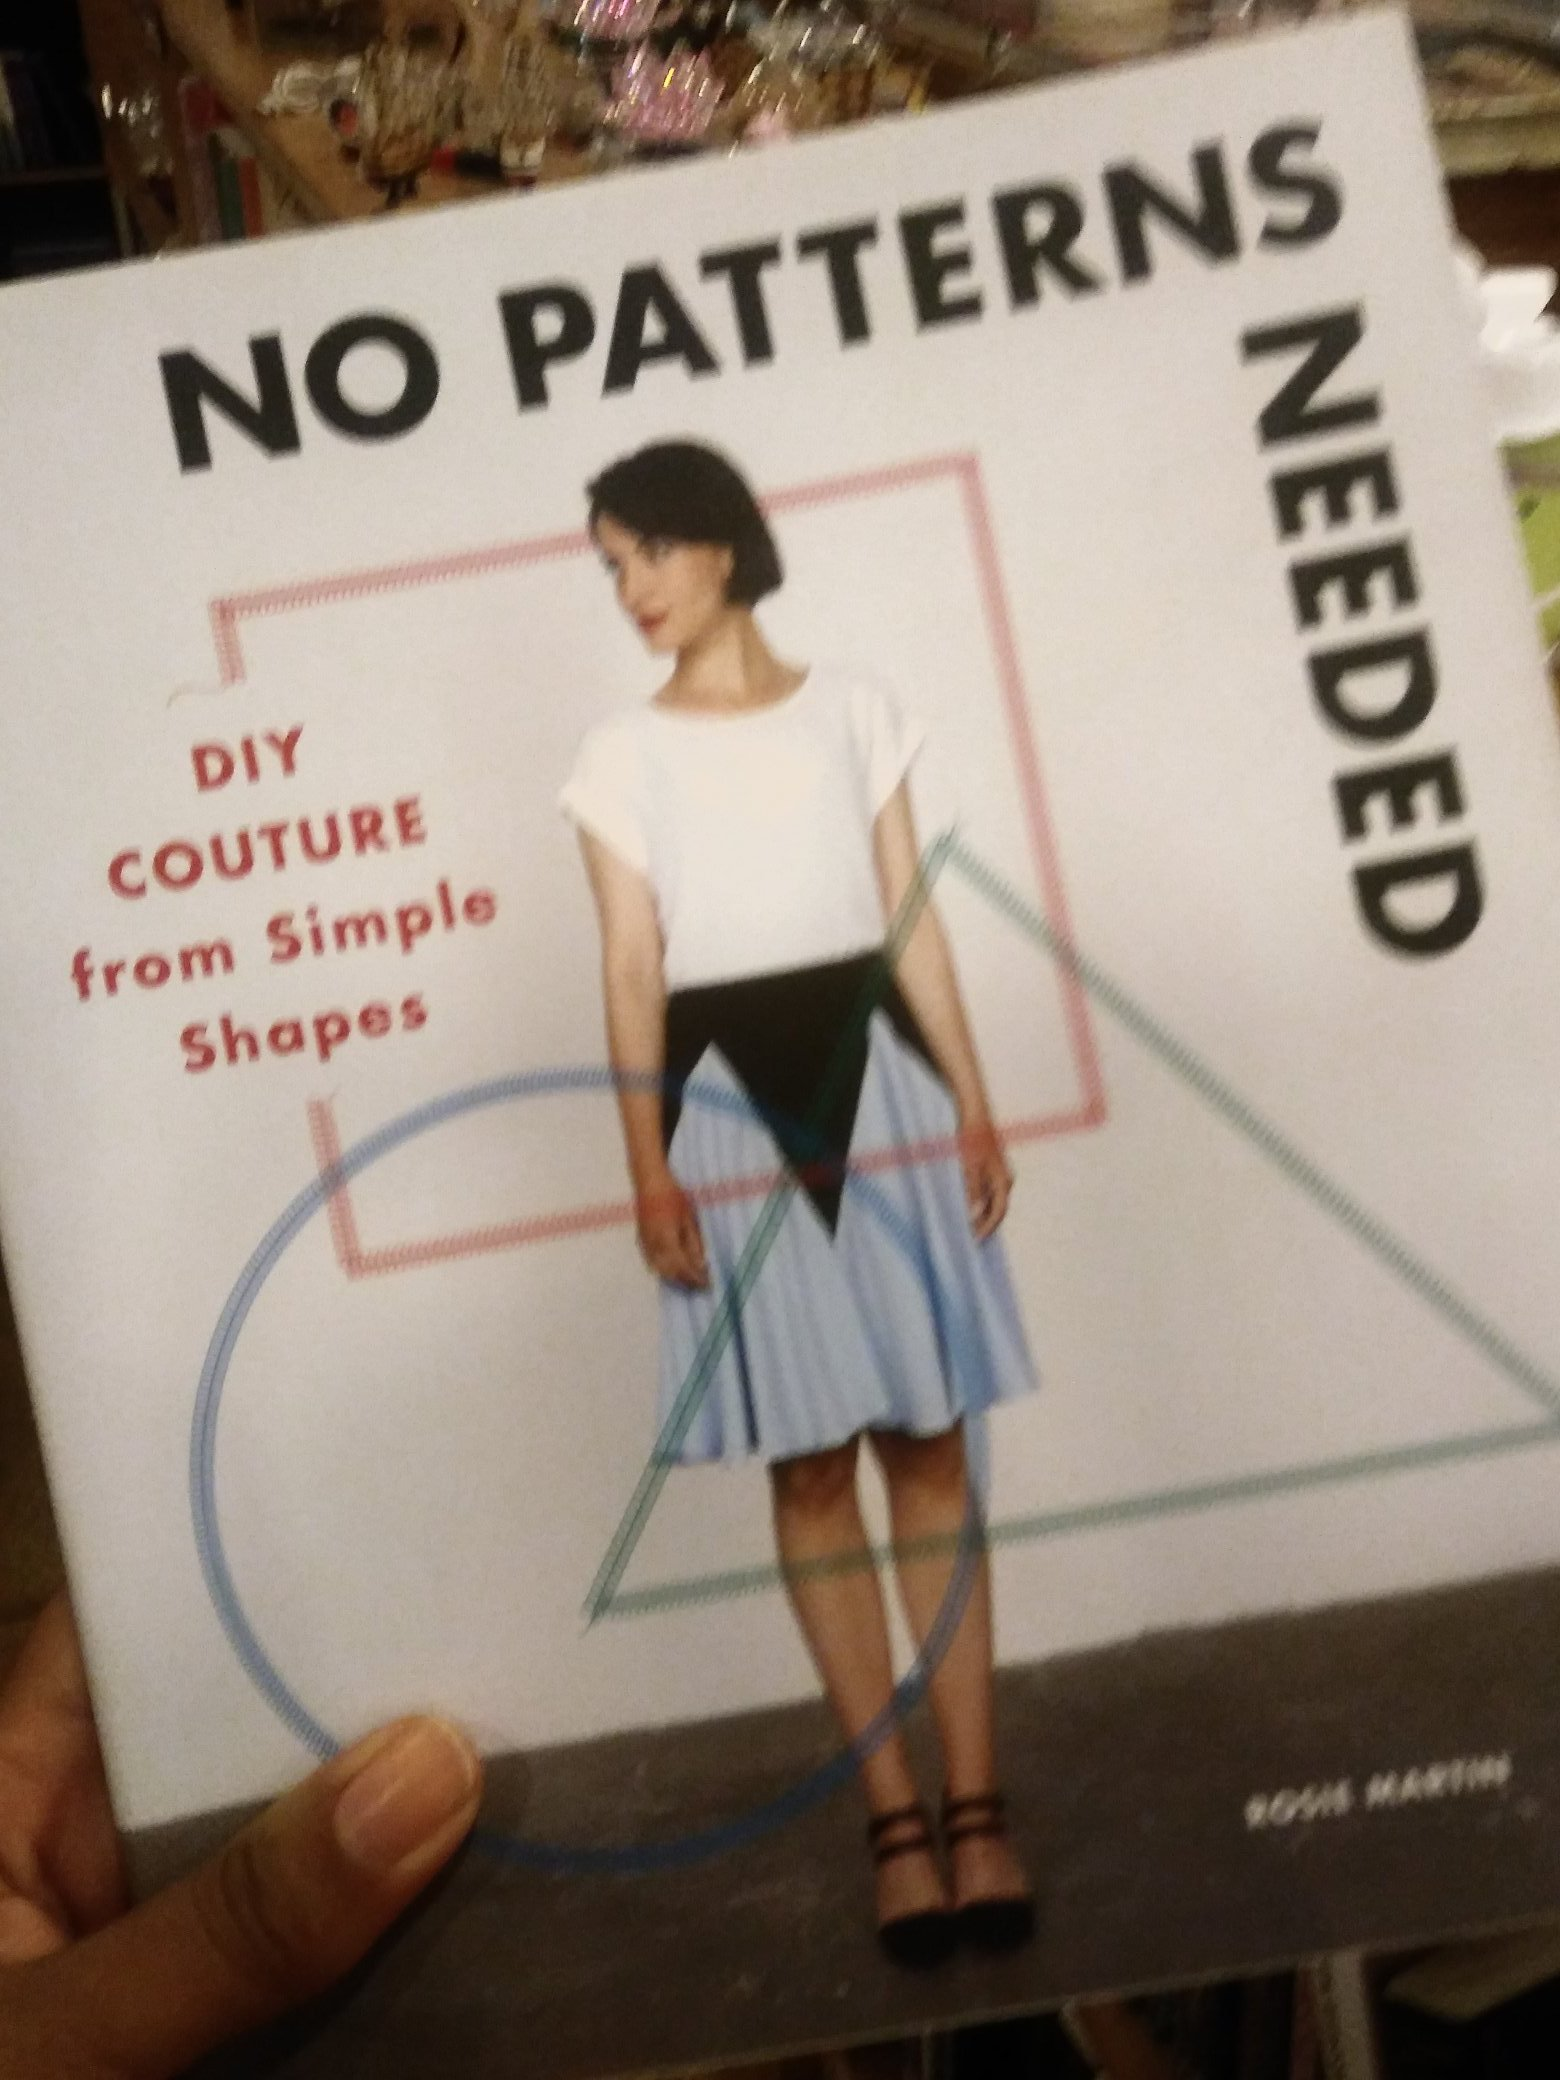 Look who i spotted in a book shop!! http://diy-couture.blogspot.co.uk/